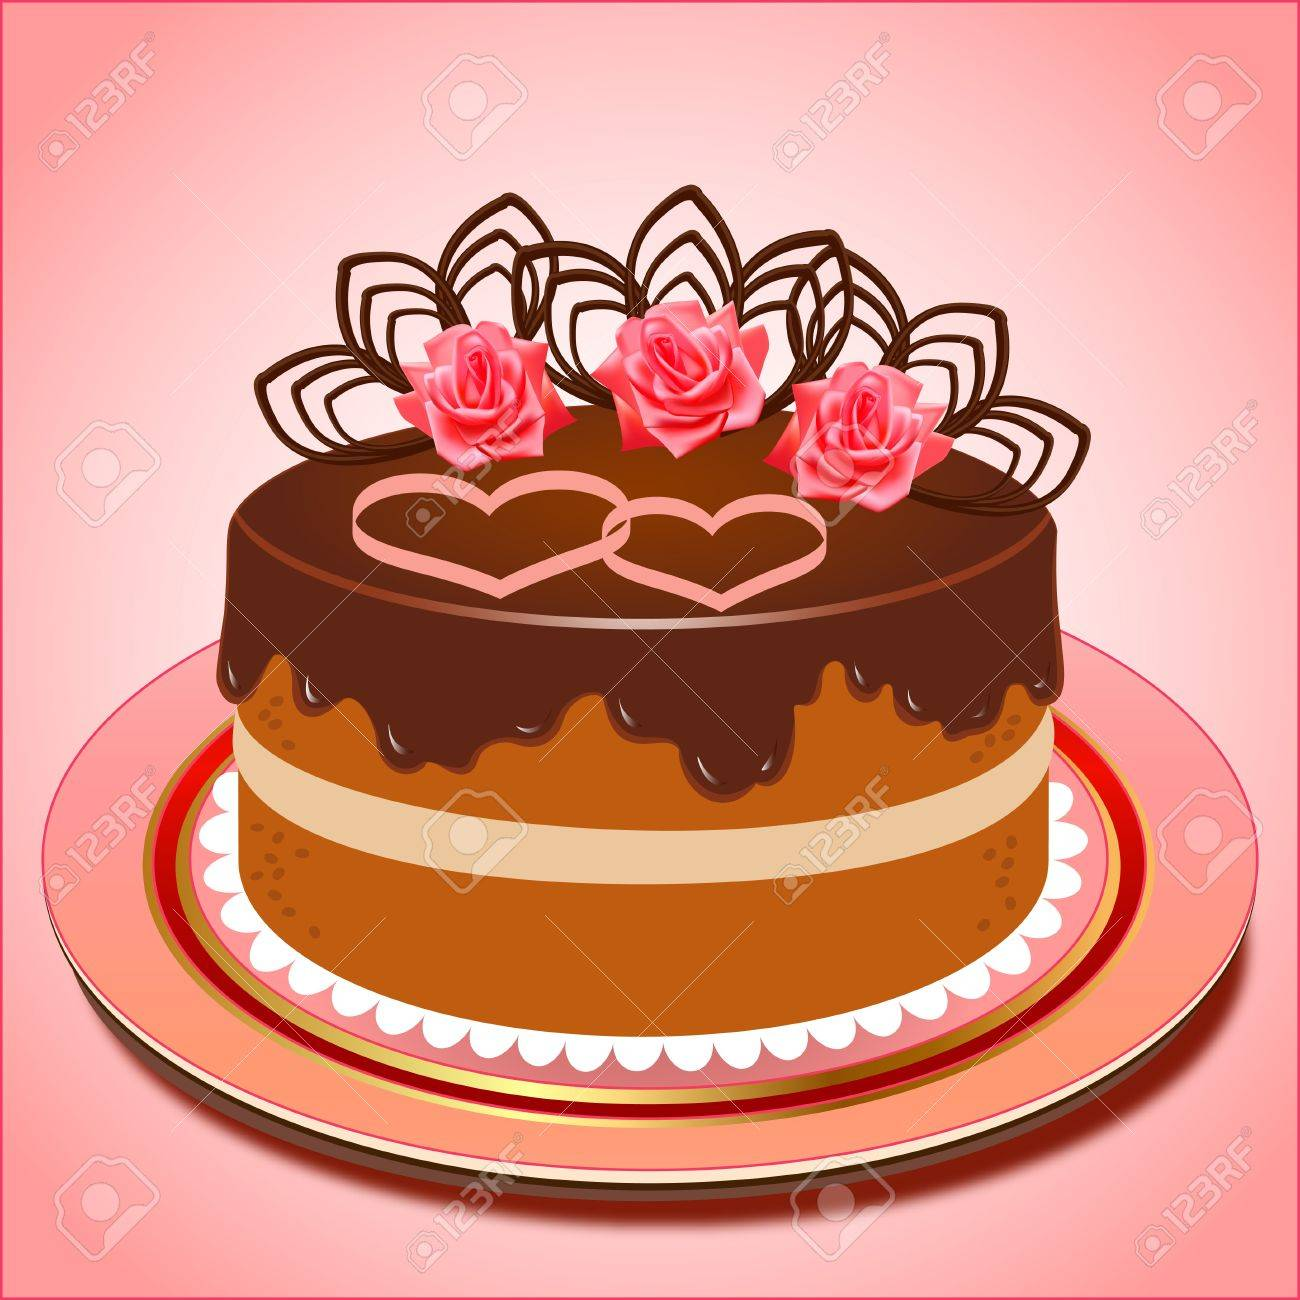 illustration of chocolate cake with hearts and roses Stock Vector - 17550259